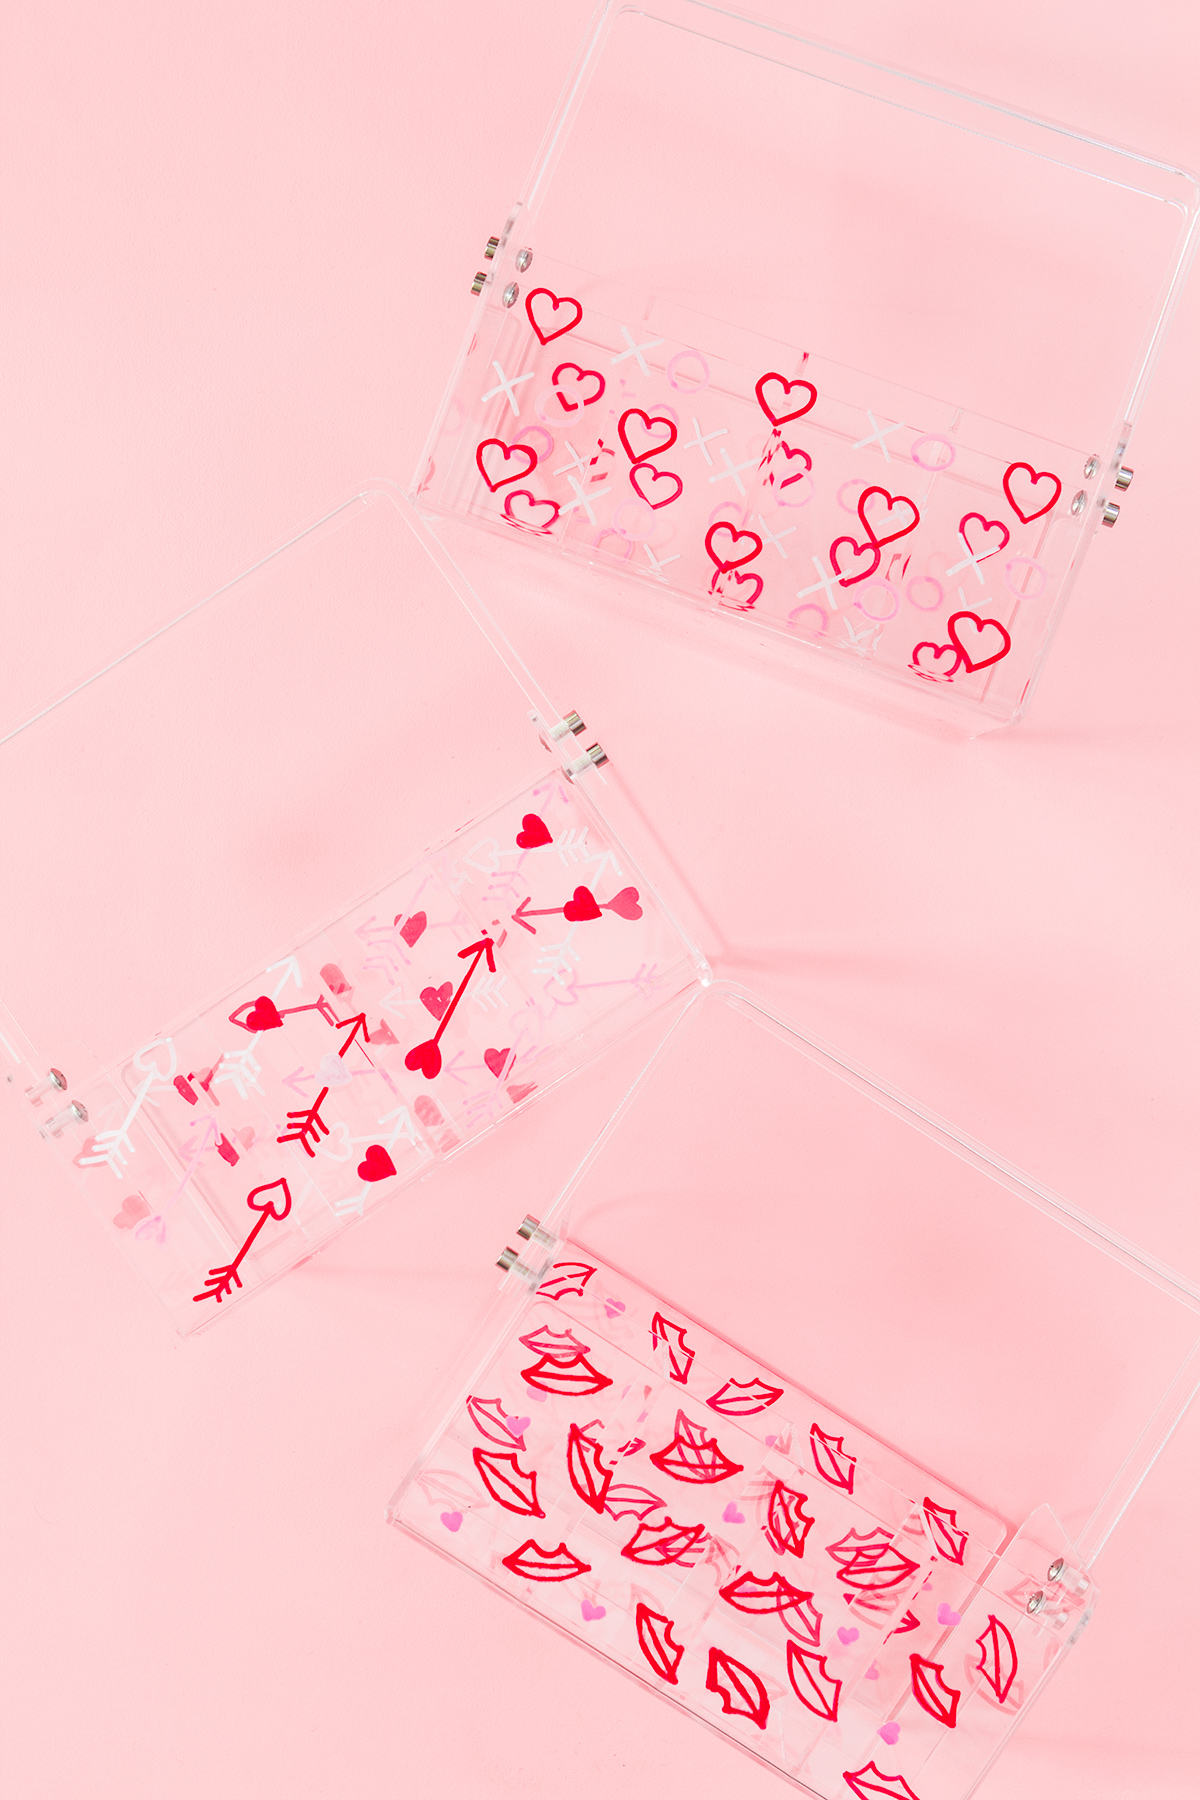 Make Valentines special for your galentines! Dress up acrylic totes with cute valentines patterns and fill them with fun treats!